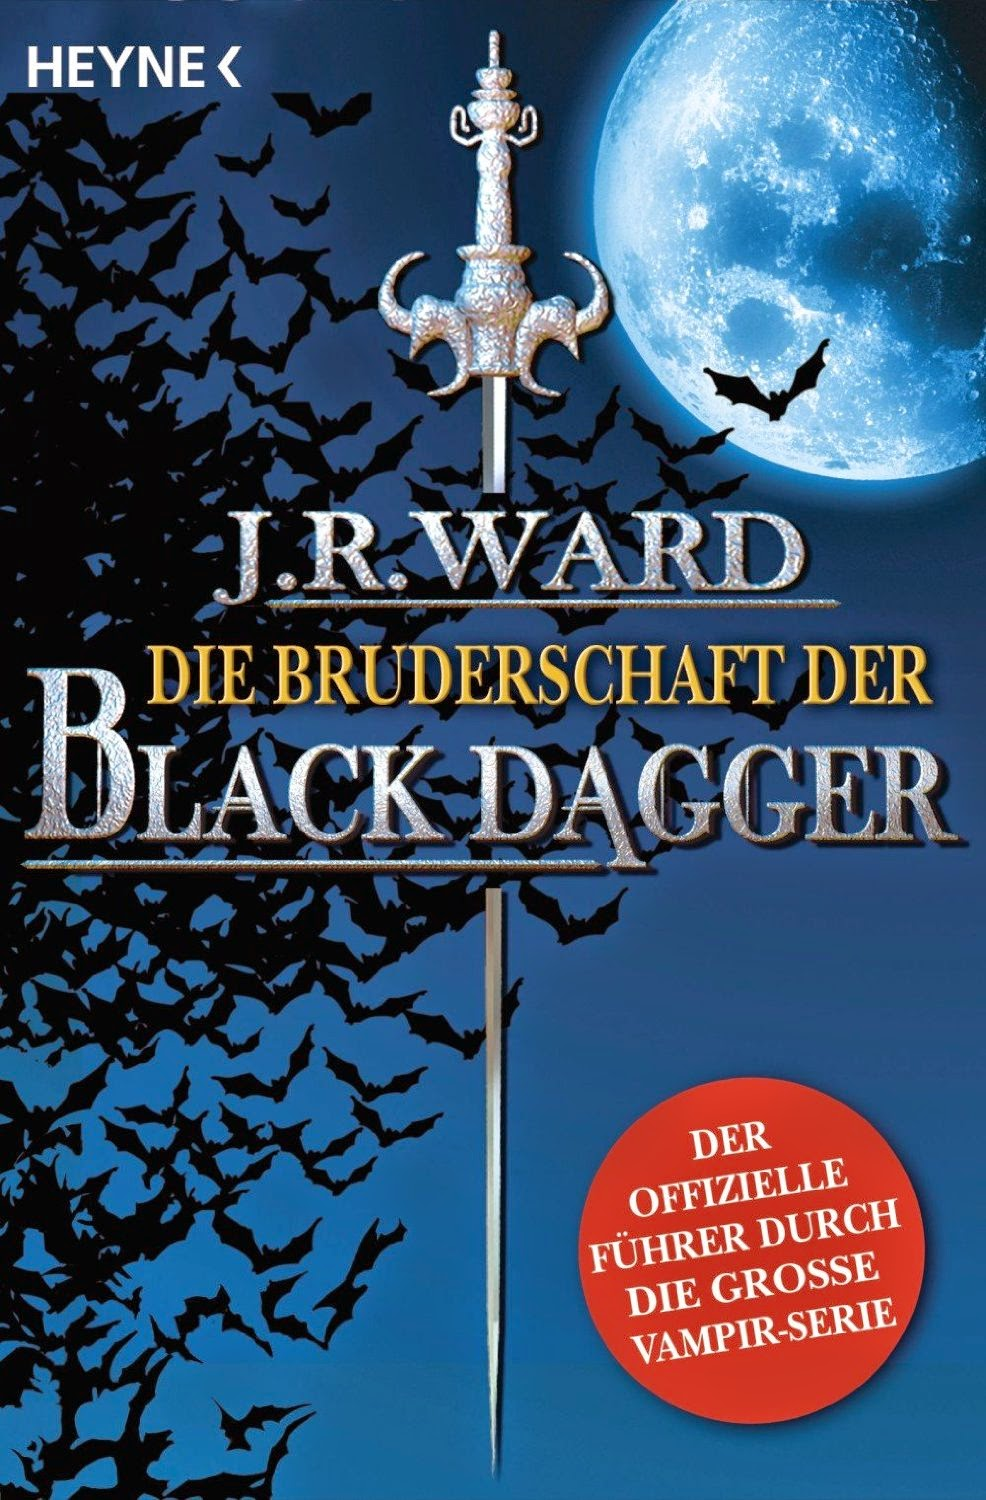 http://www.amazon.de/Die-Bruderschaft-Black-Dagger-F%C3%BChrer-ebook/dp/B004P1JBT6/ref=sr_1_1?s=books&ie=UTF8&qid=1418041414&sr=1-1&keywords=die+bruderschaft+der+black+dagger